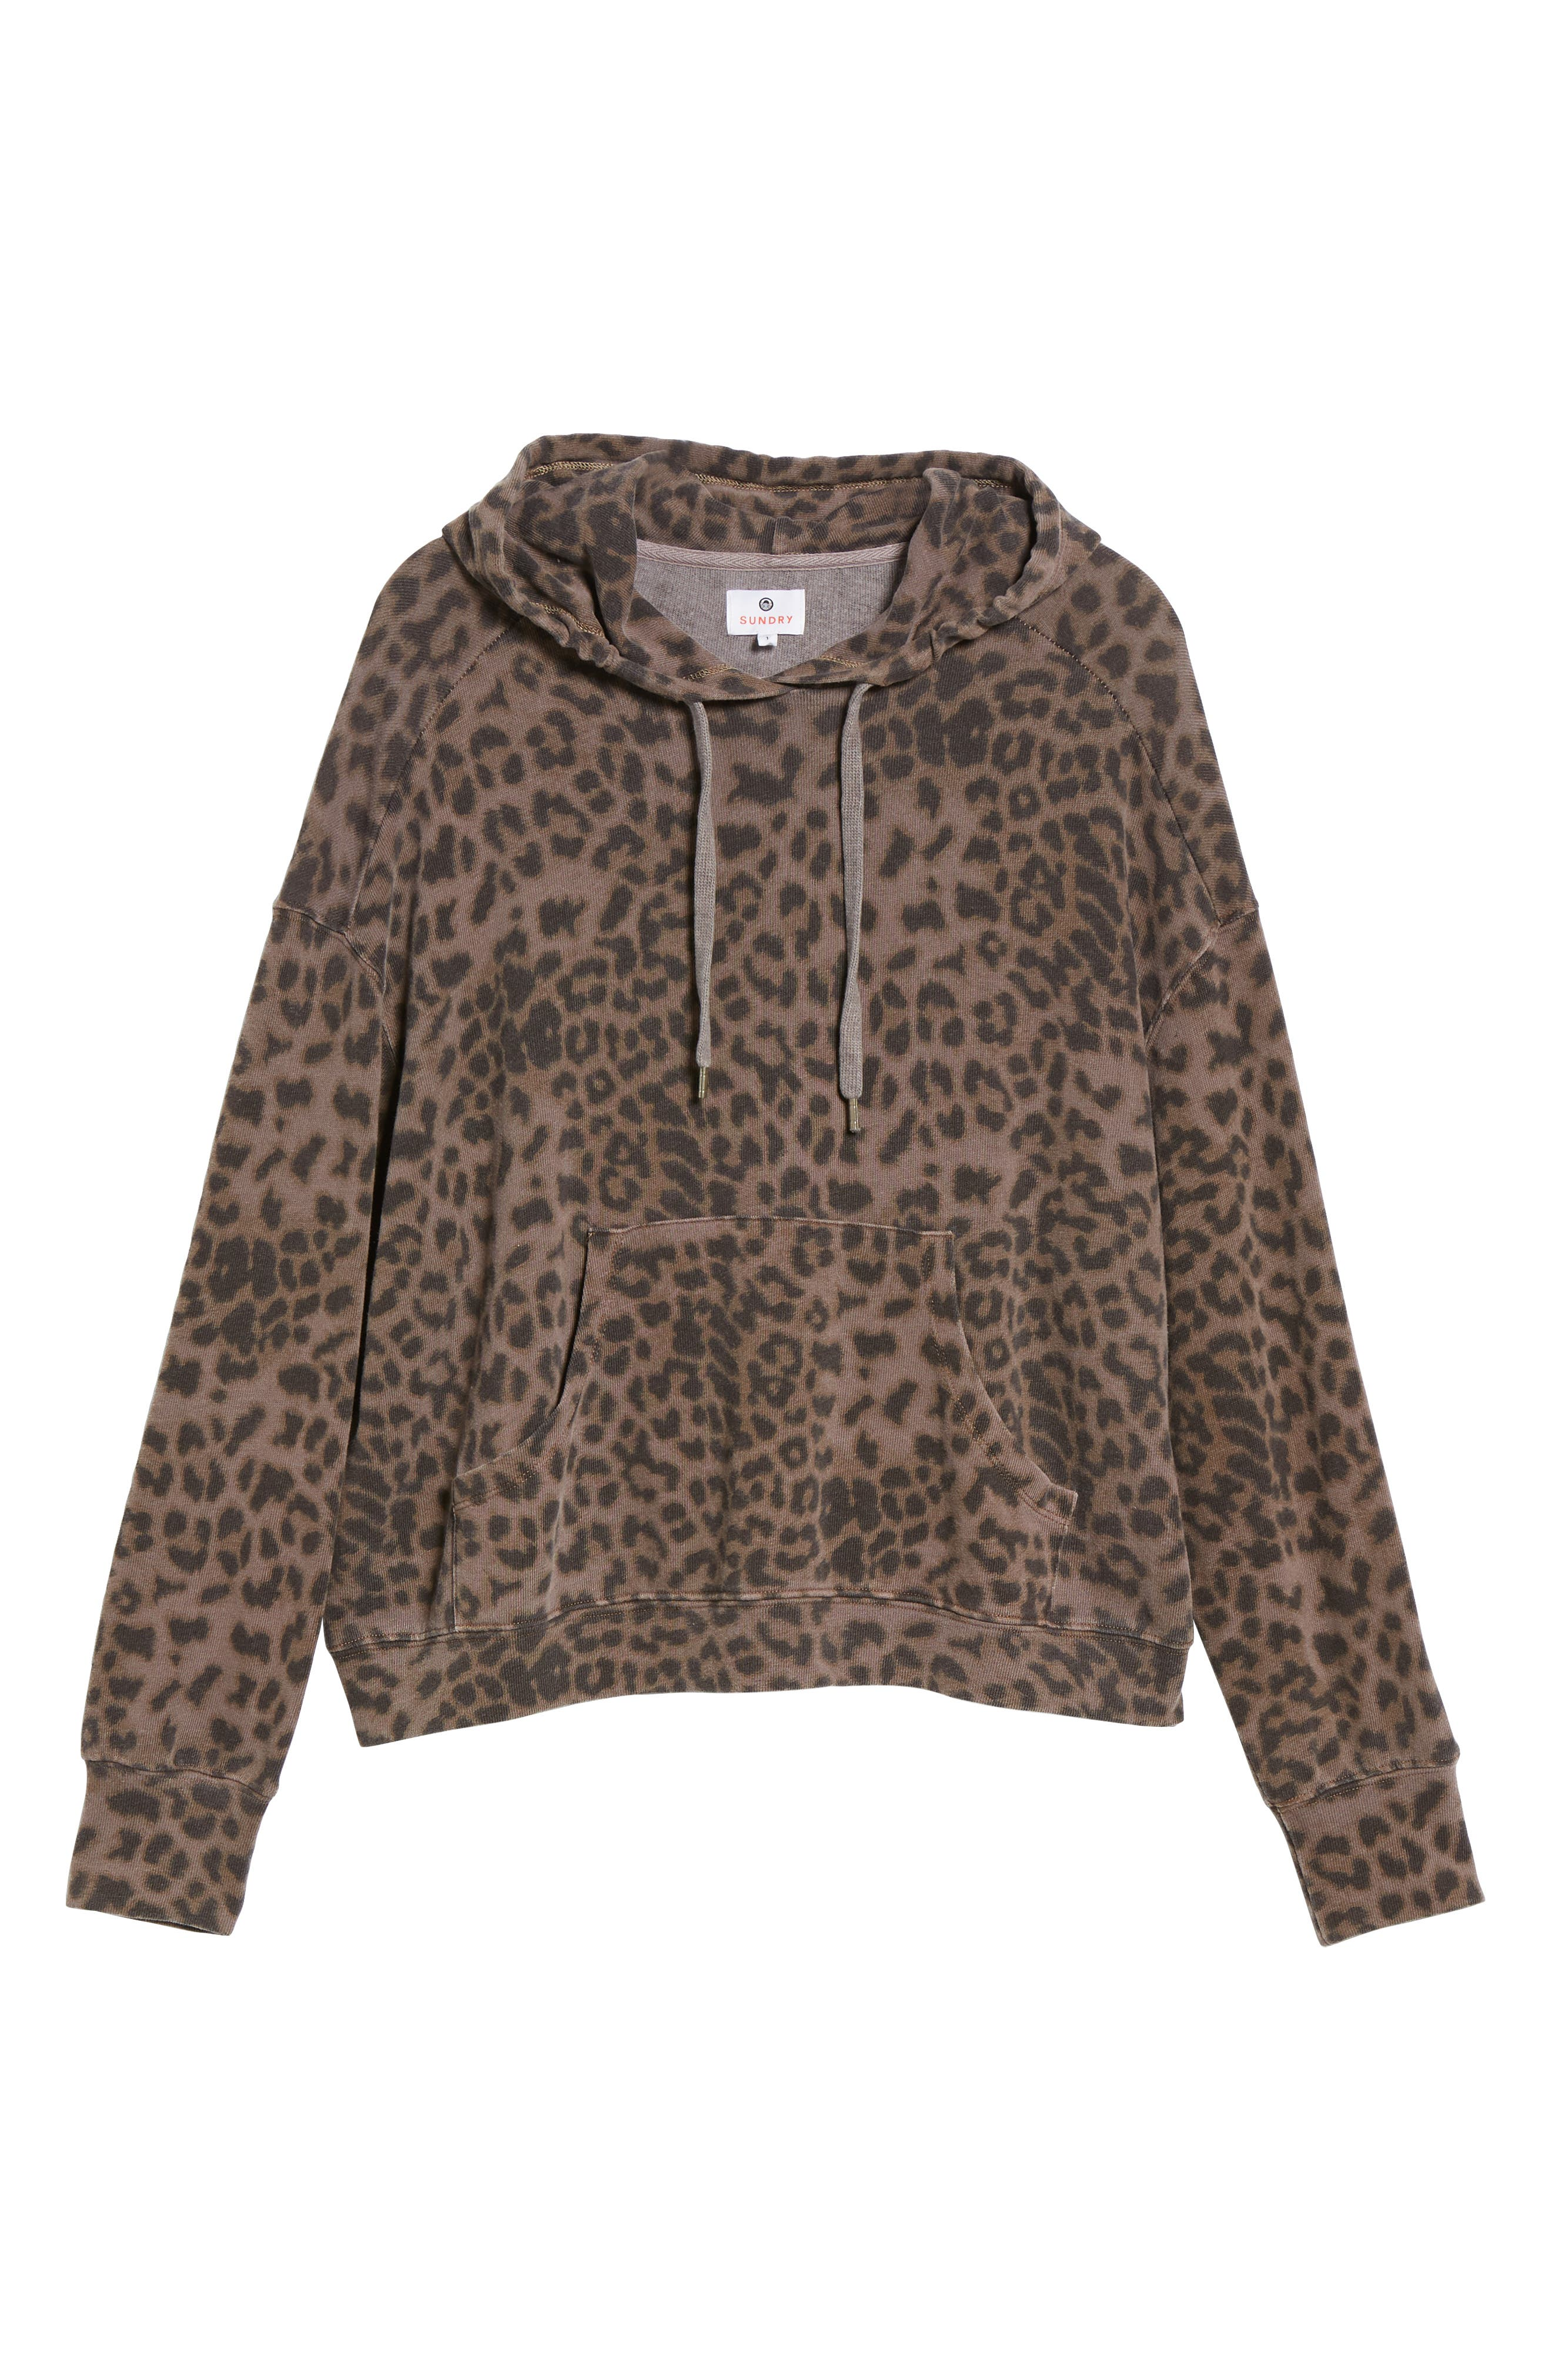 Leopard Spot Crop Hoodie,                             Alternate thumbnail 6, color,                             200